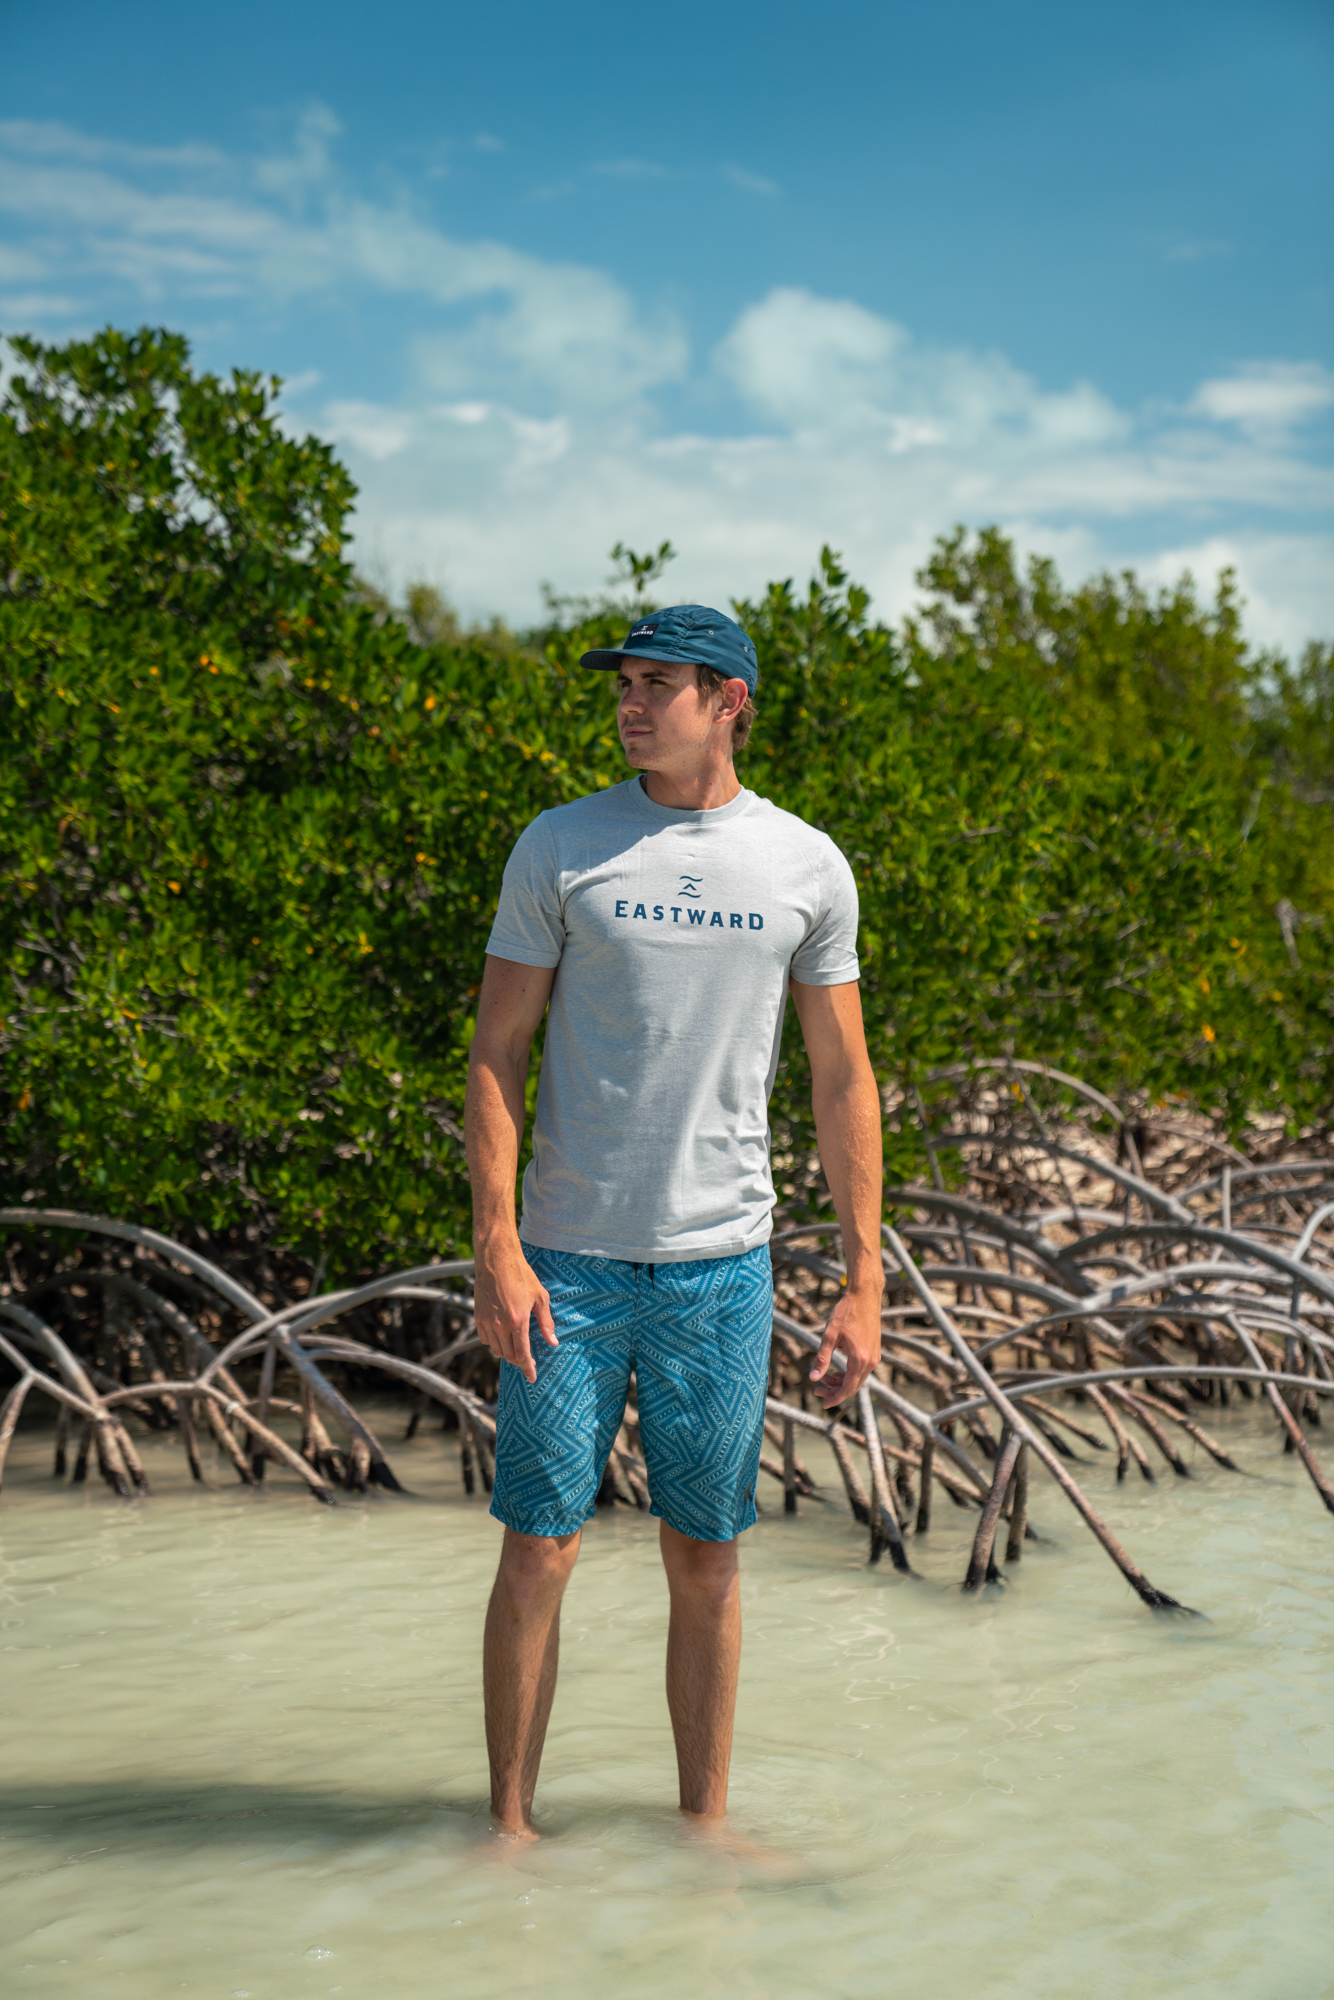 Ian-Wilson-Navarro-Photography-Eastward-Everglades--DSC09924-12